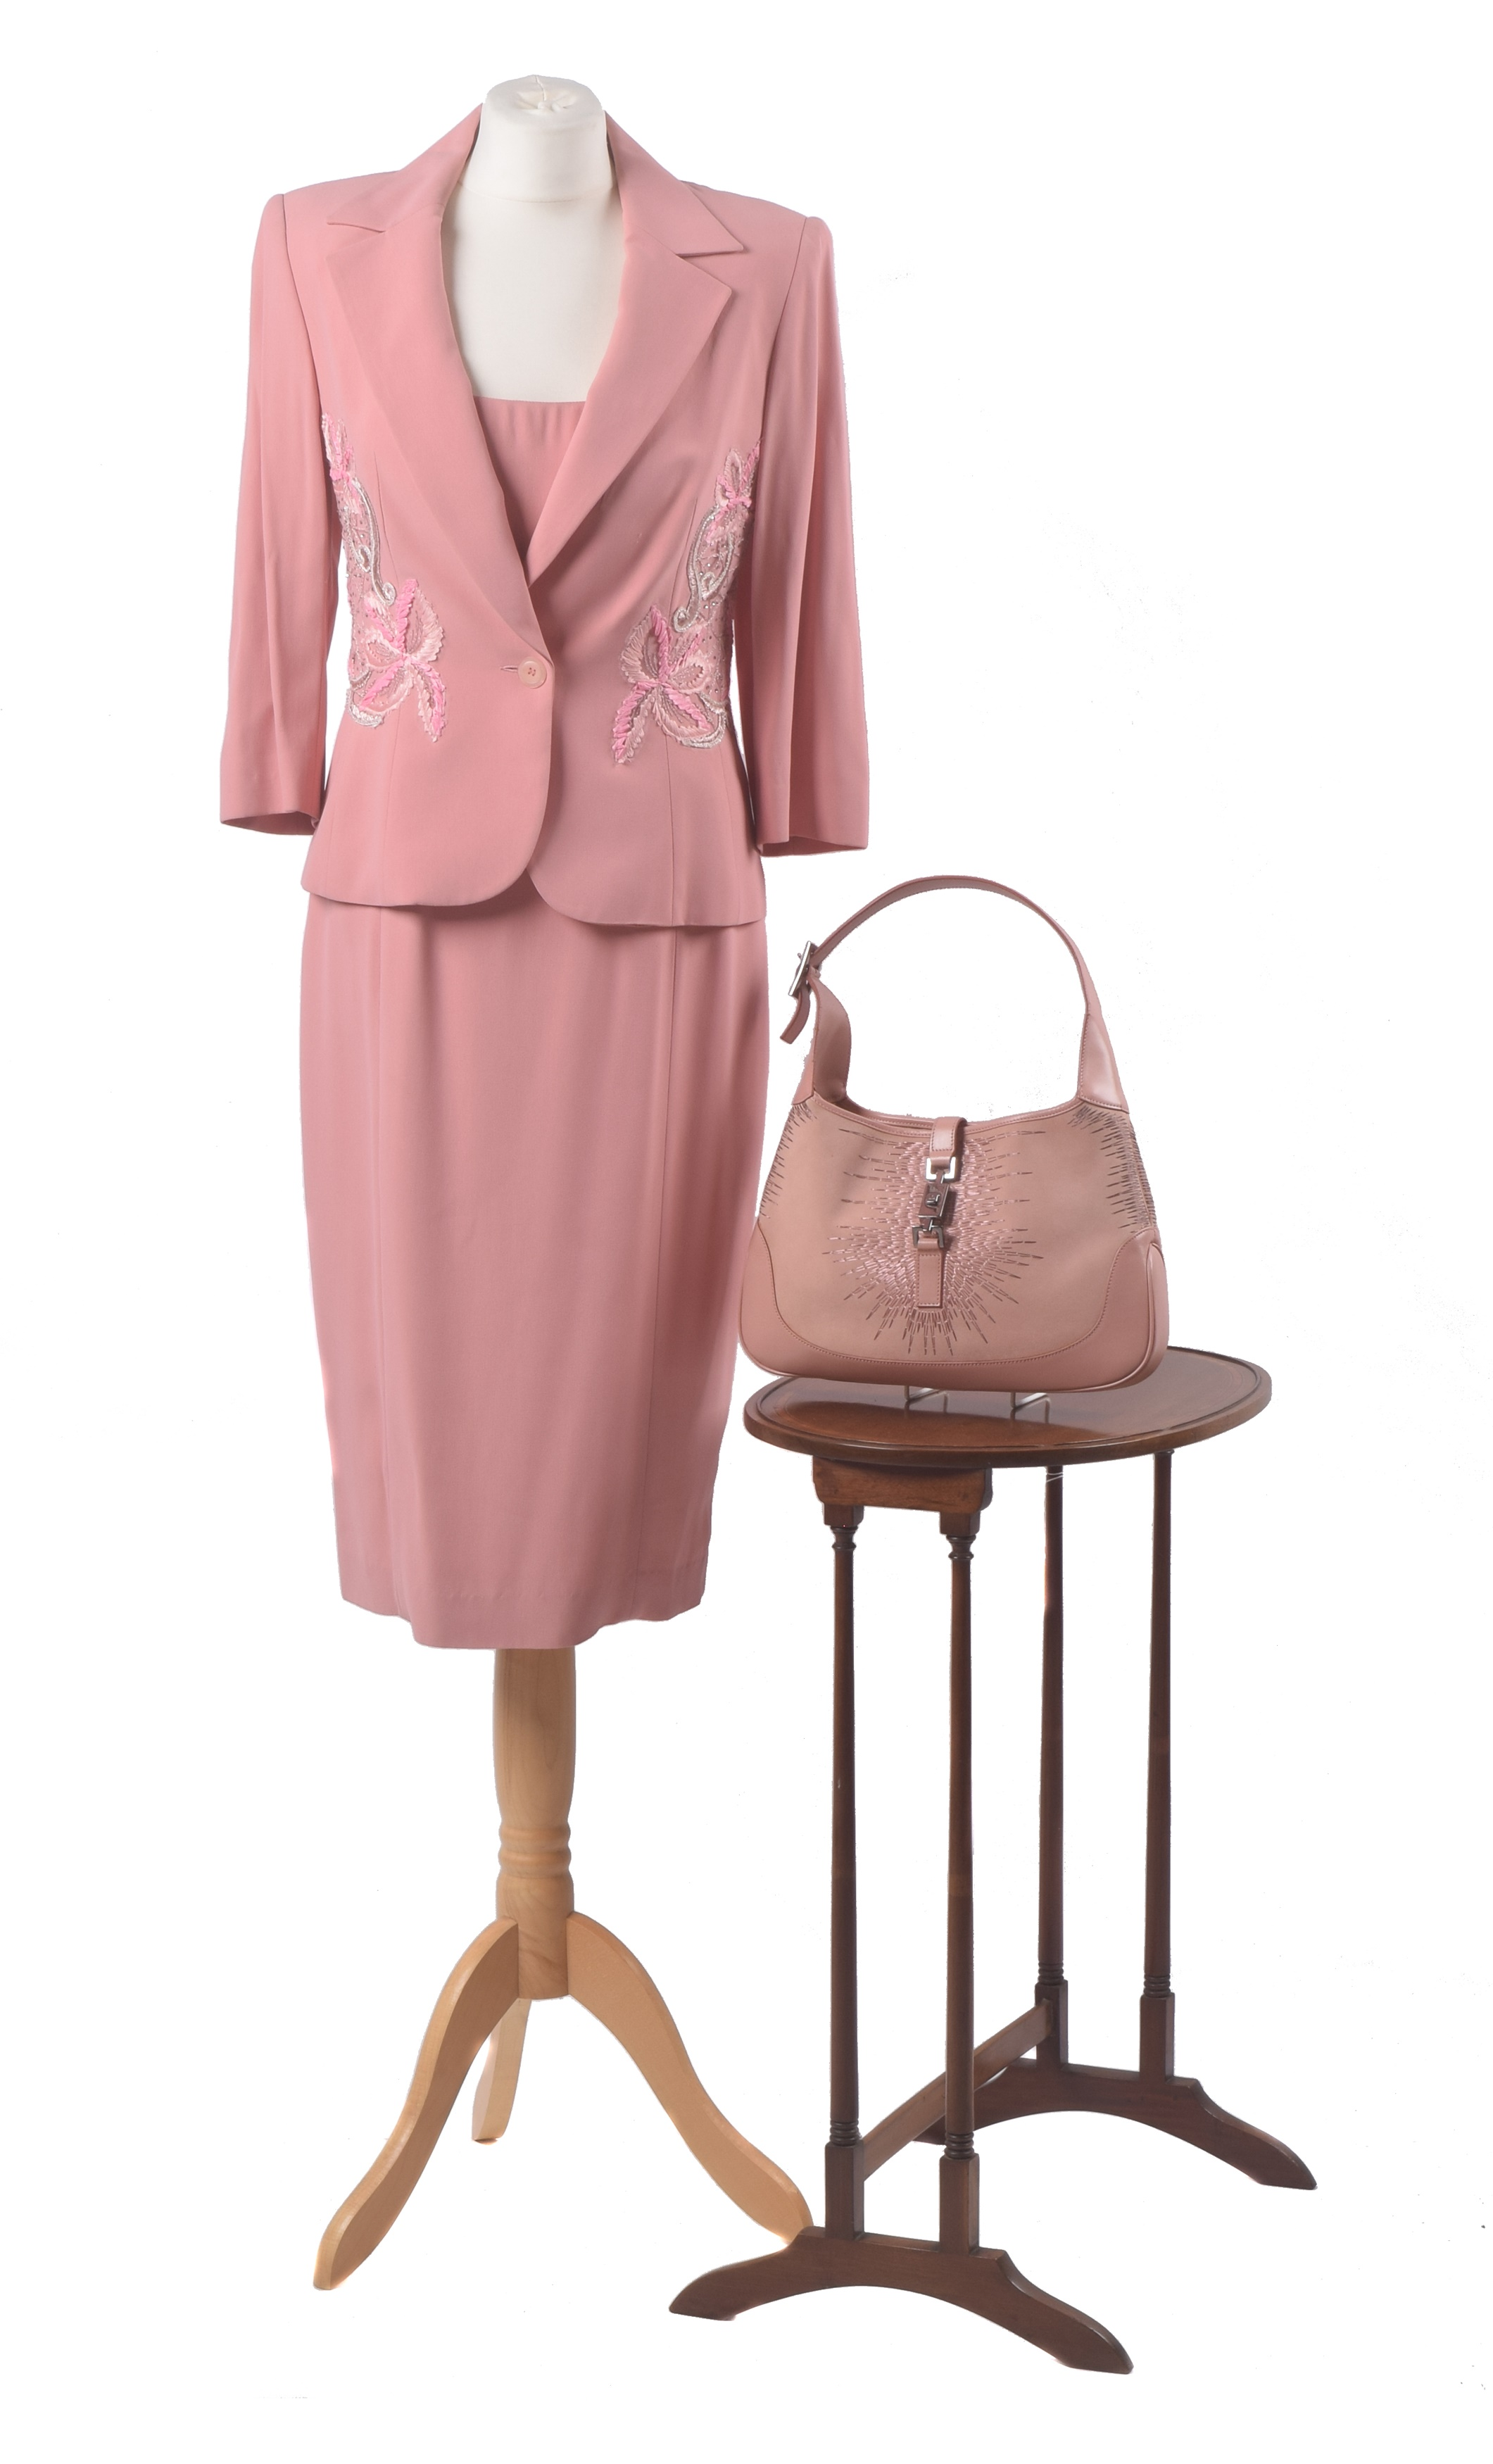 Gucci Jackie bag, pink embroidered suit